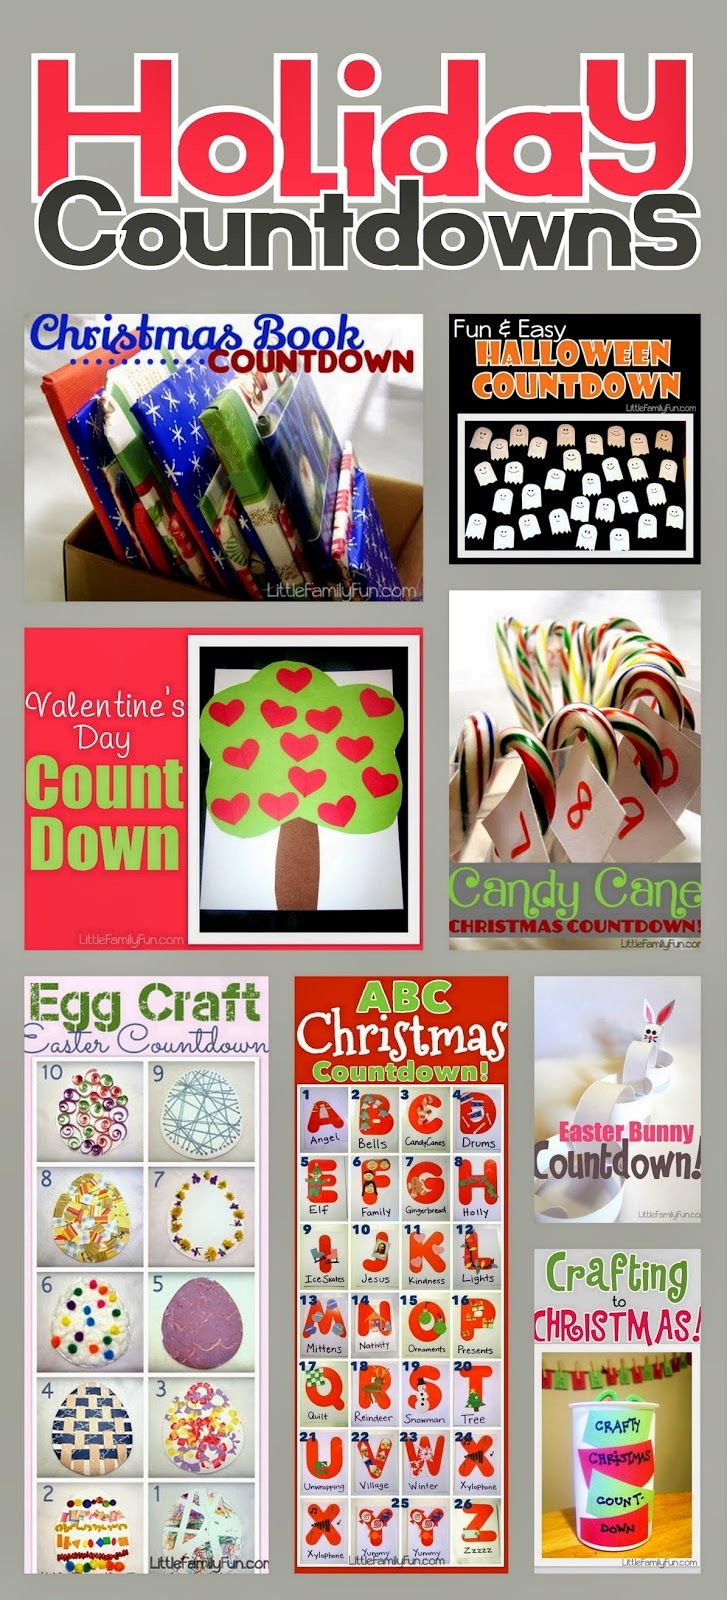 Holiday Countdown ideas. Fun ways to get ready for different Holidays! Easter countdown. Halloween Countdown. Christmas Countdown. Valentines Day Countdown.